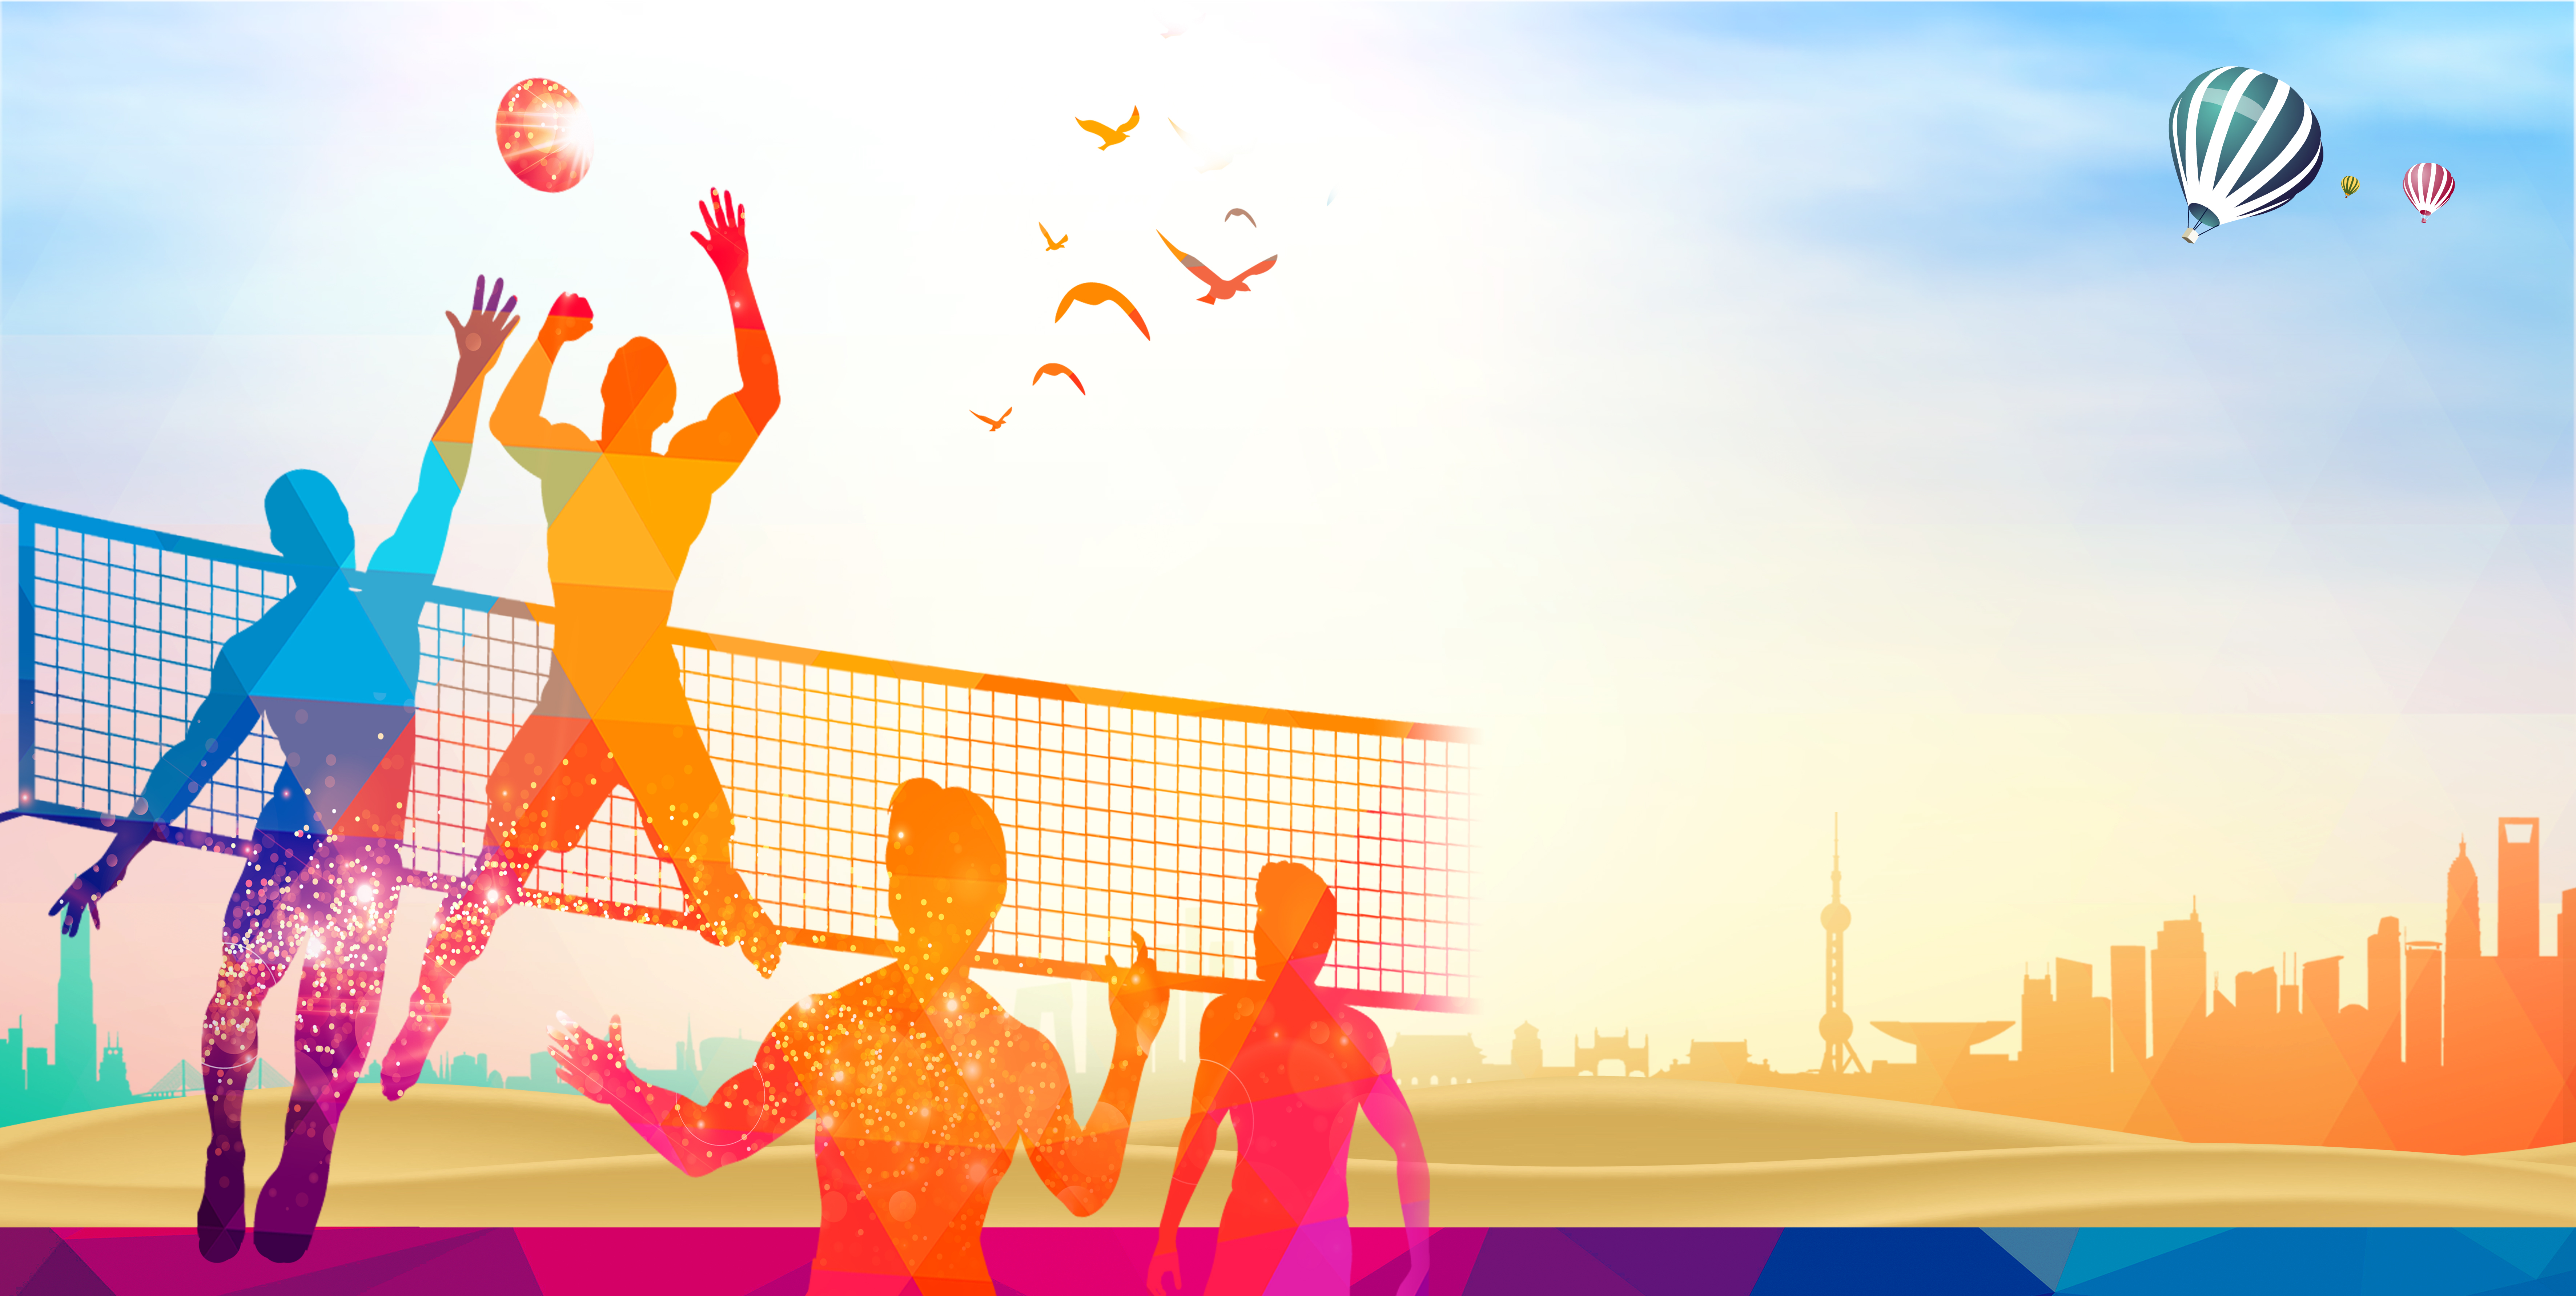 Volleyball Match Posters Background Volleyball Game